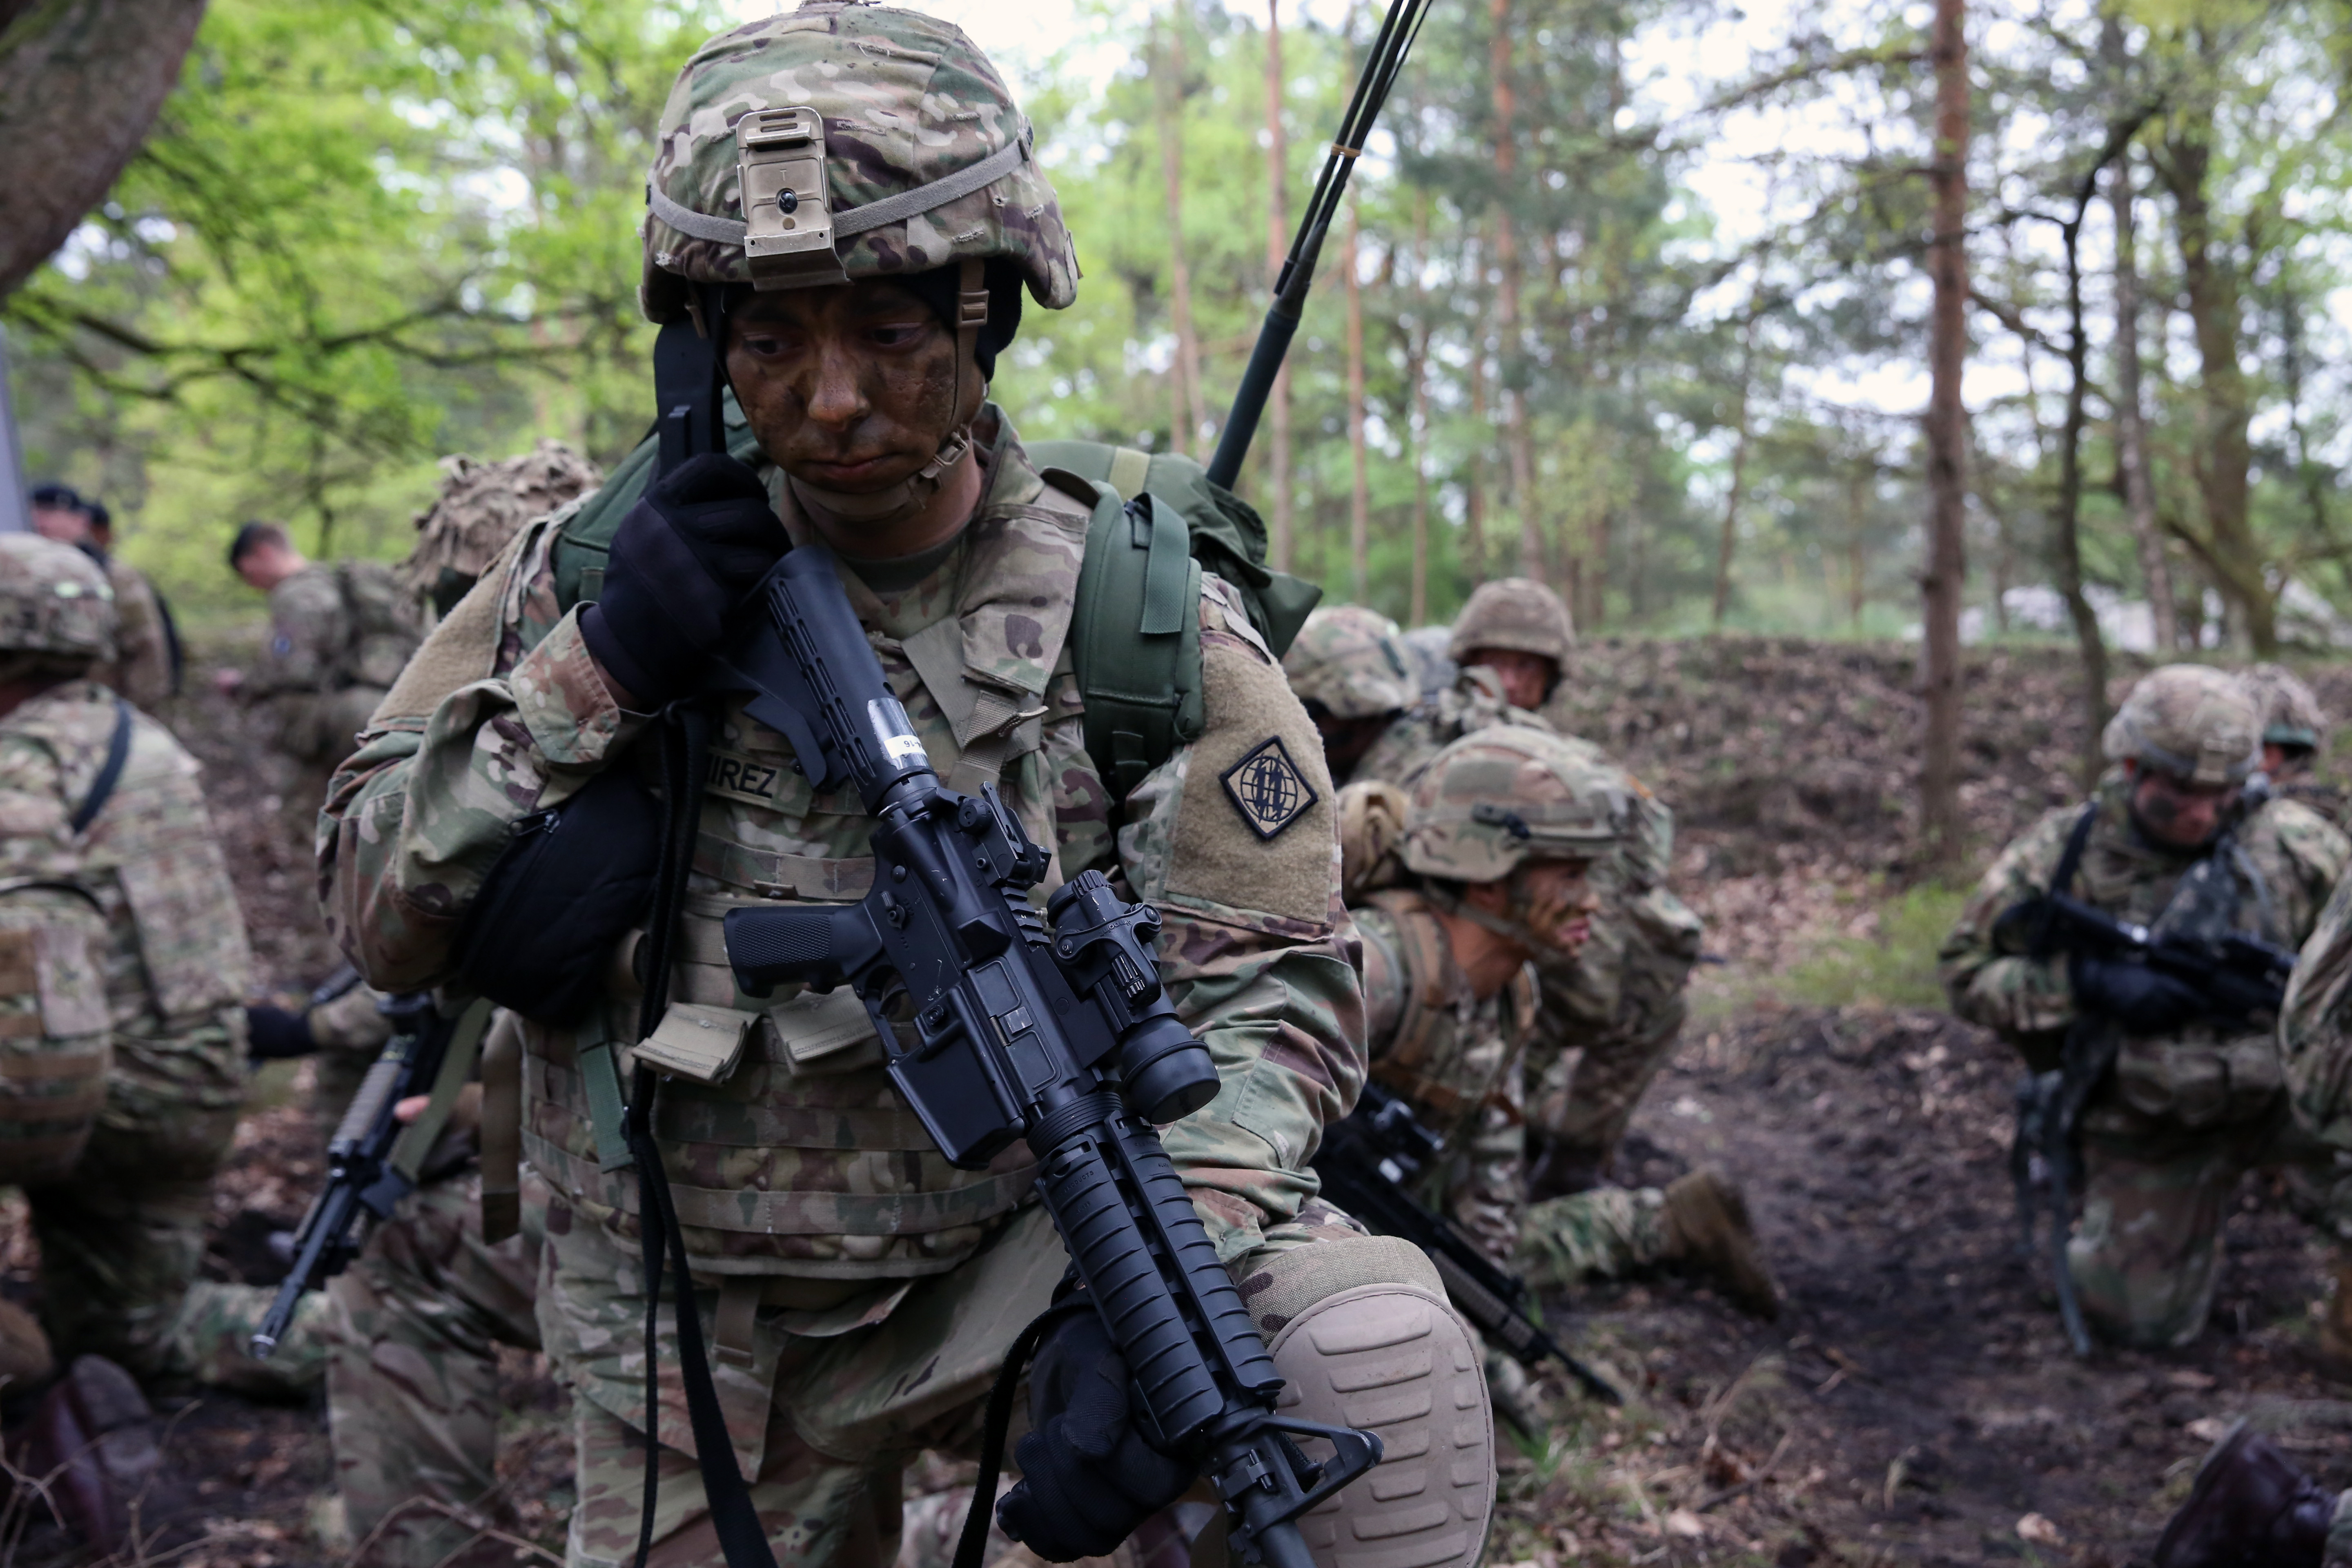 U.S. Army Cpl. Andrew Ramirez, assigned to Bravo Company, 44th Expeditionary Signal Battalion, 2nd Theater Signal Brigade, talks on a radio during during exercise Stoney Run, April 24, 2018 in the Sennelager Training Area, Germany. Stoney Run is an annual U.S.-U.K. signal exercise designed to test and validate communications and network capabilities, and enhance interoperability and partner capacity between the two NATO allies. (U.S. Army photo by William B. King)